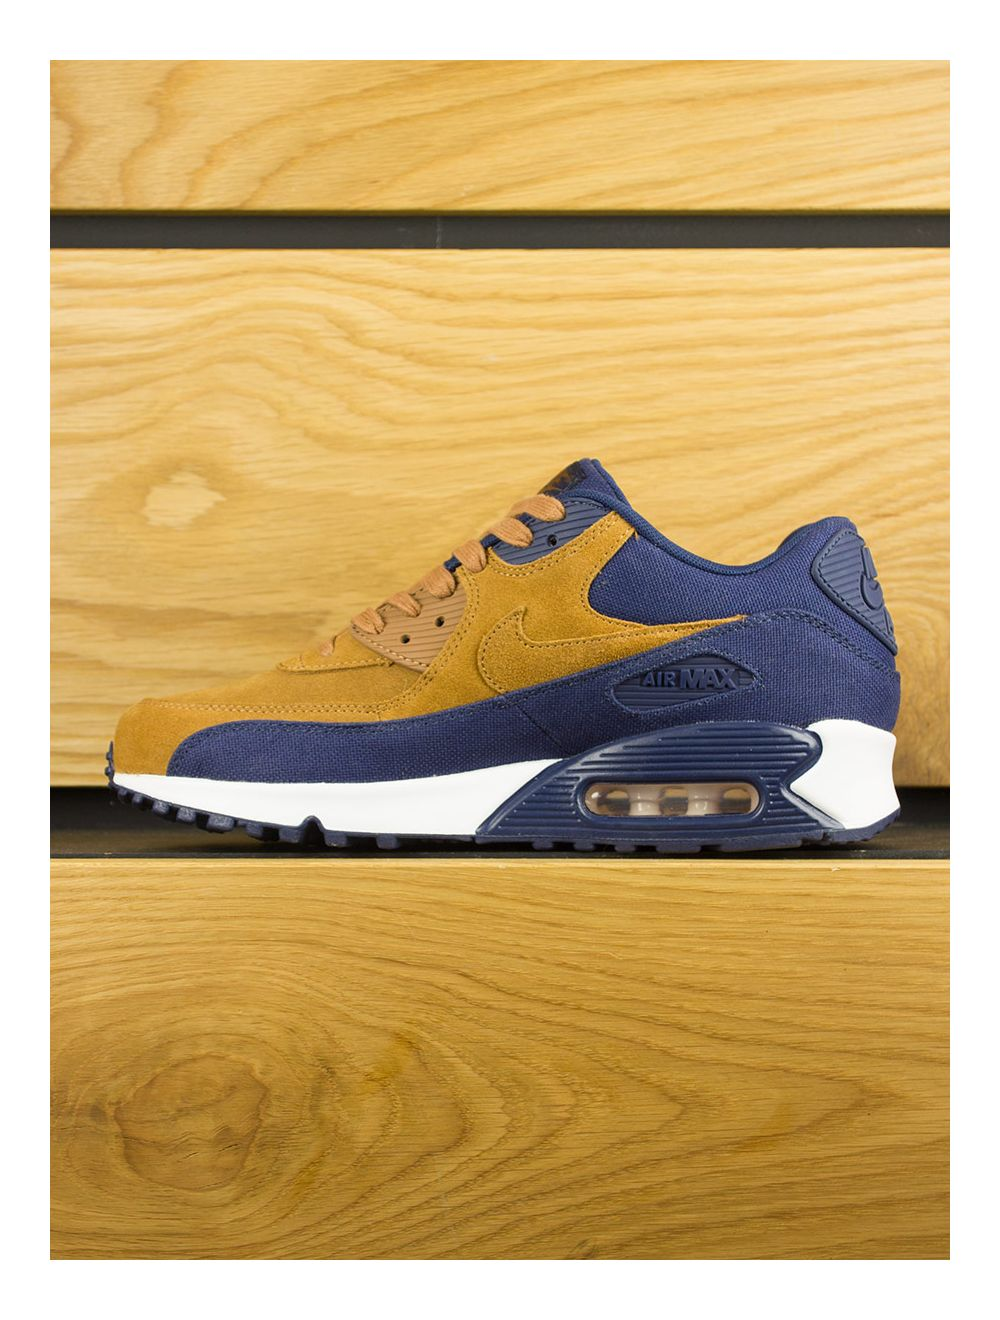 super popular bd7e4 f7523 Nike Air Max 90 Premium - Ale Brown